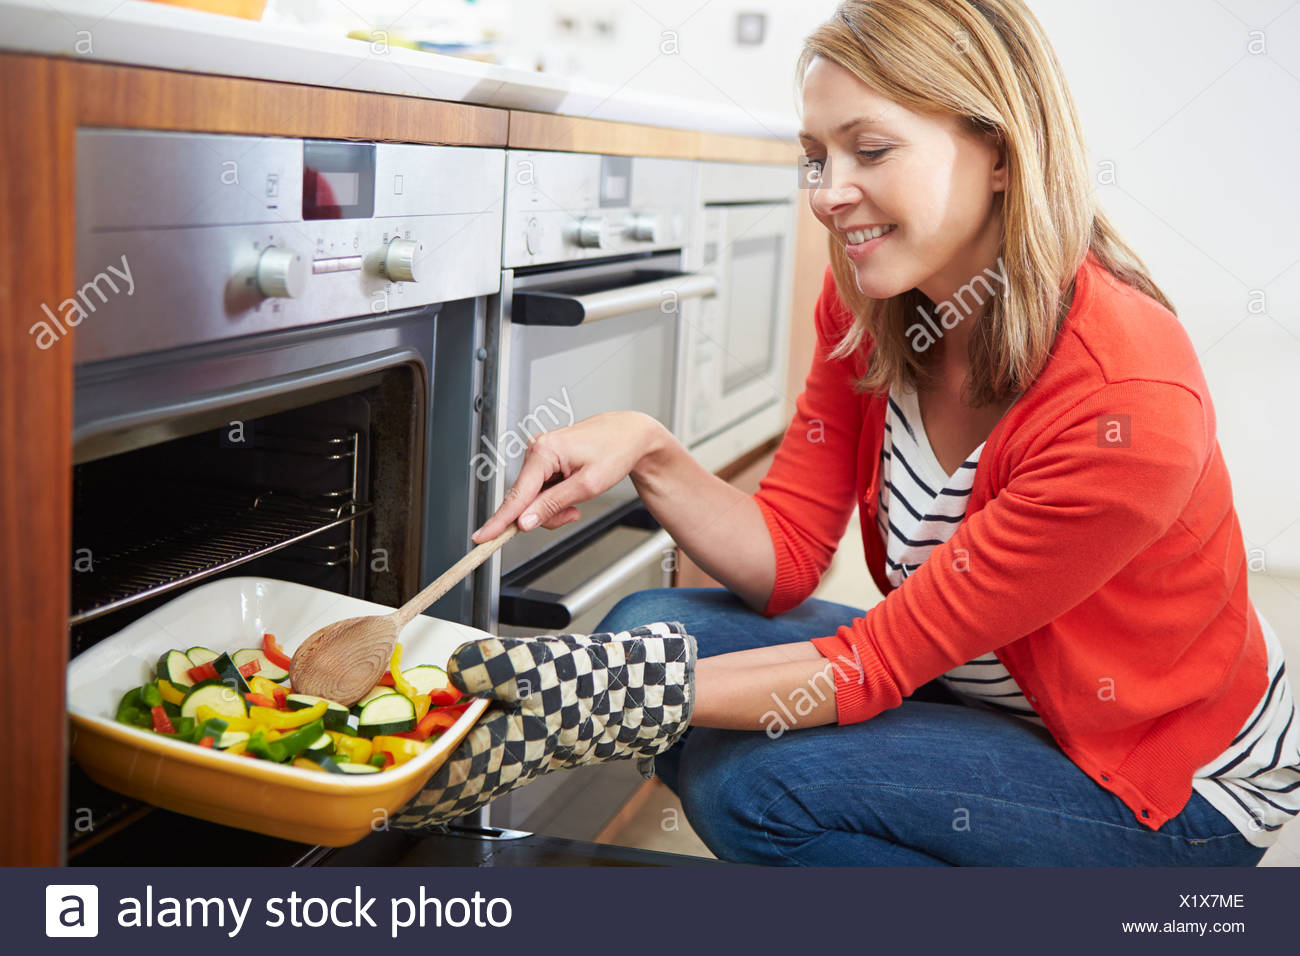 Woman Putting Tray Of Roast Vegetables Into Oven - Stock Image